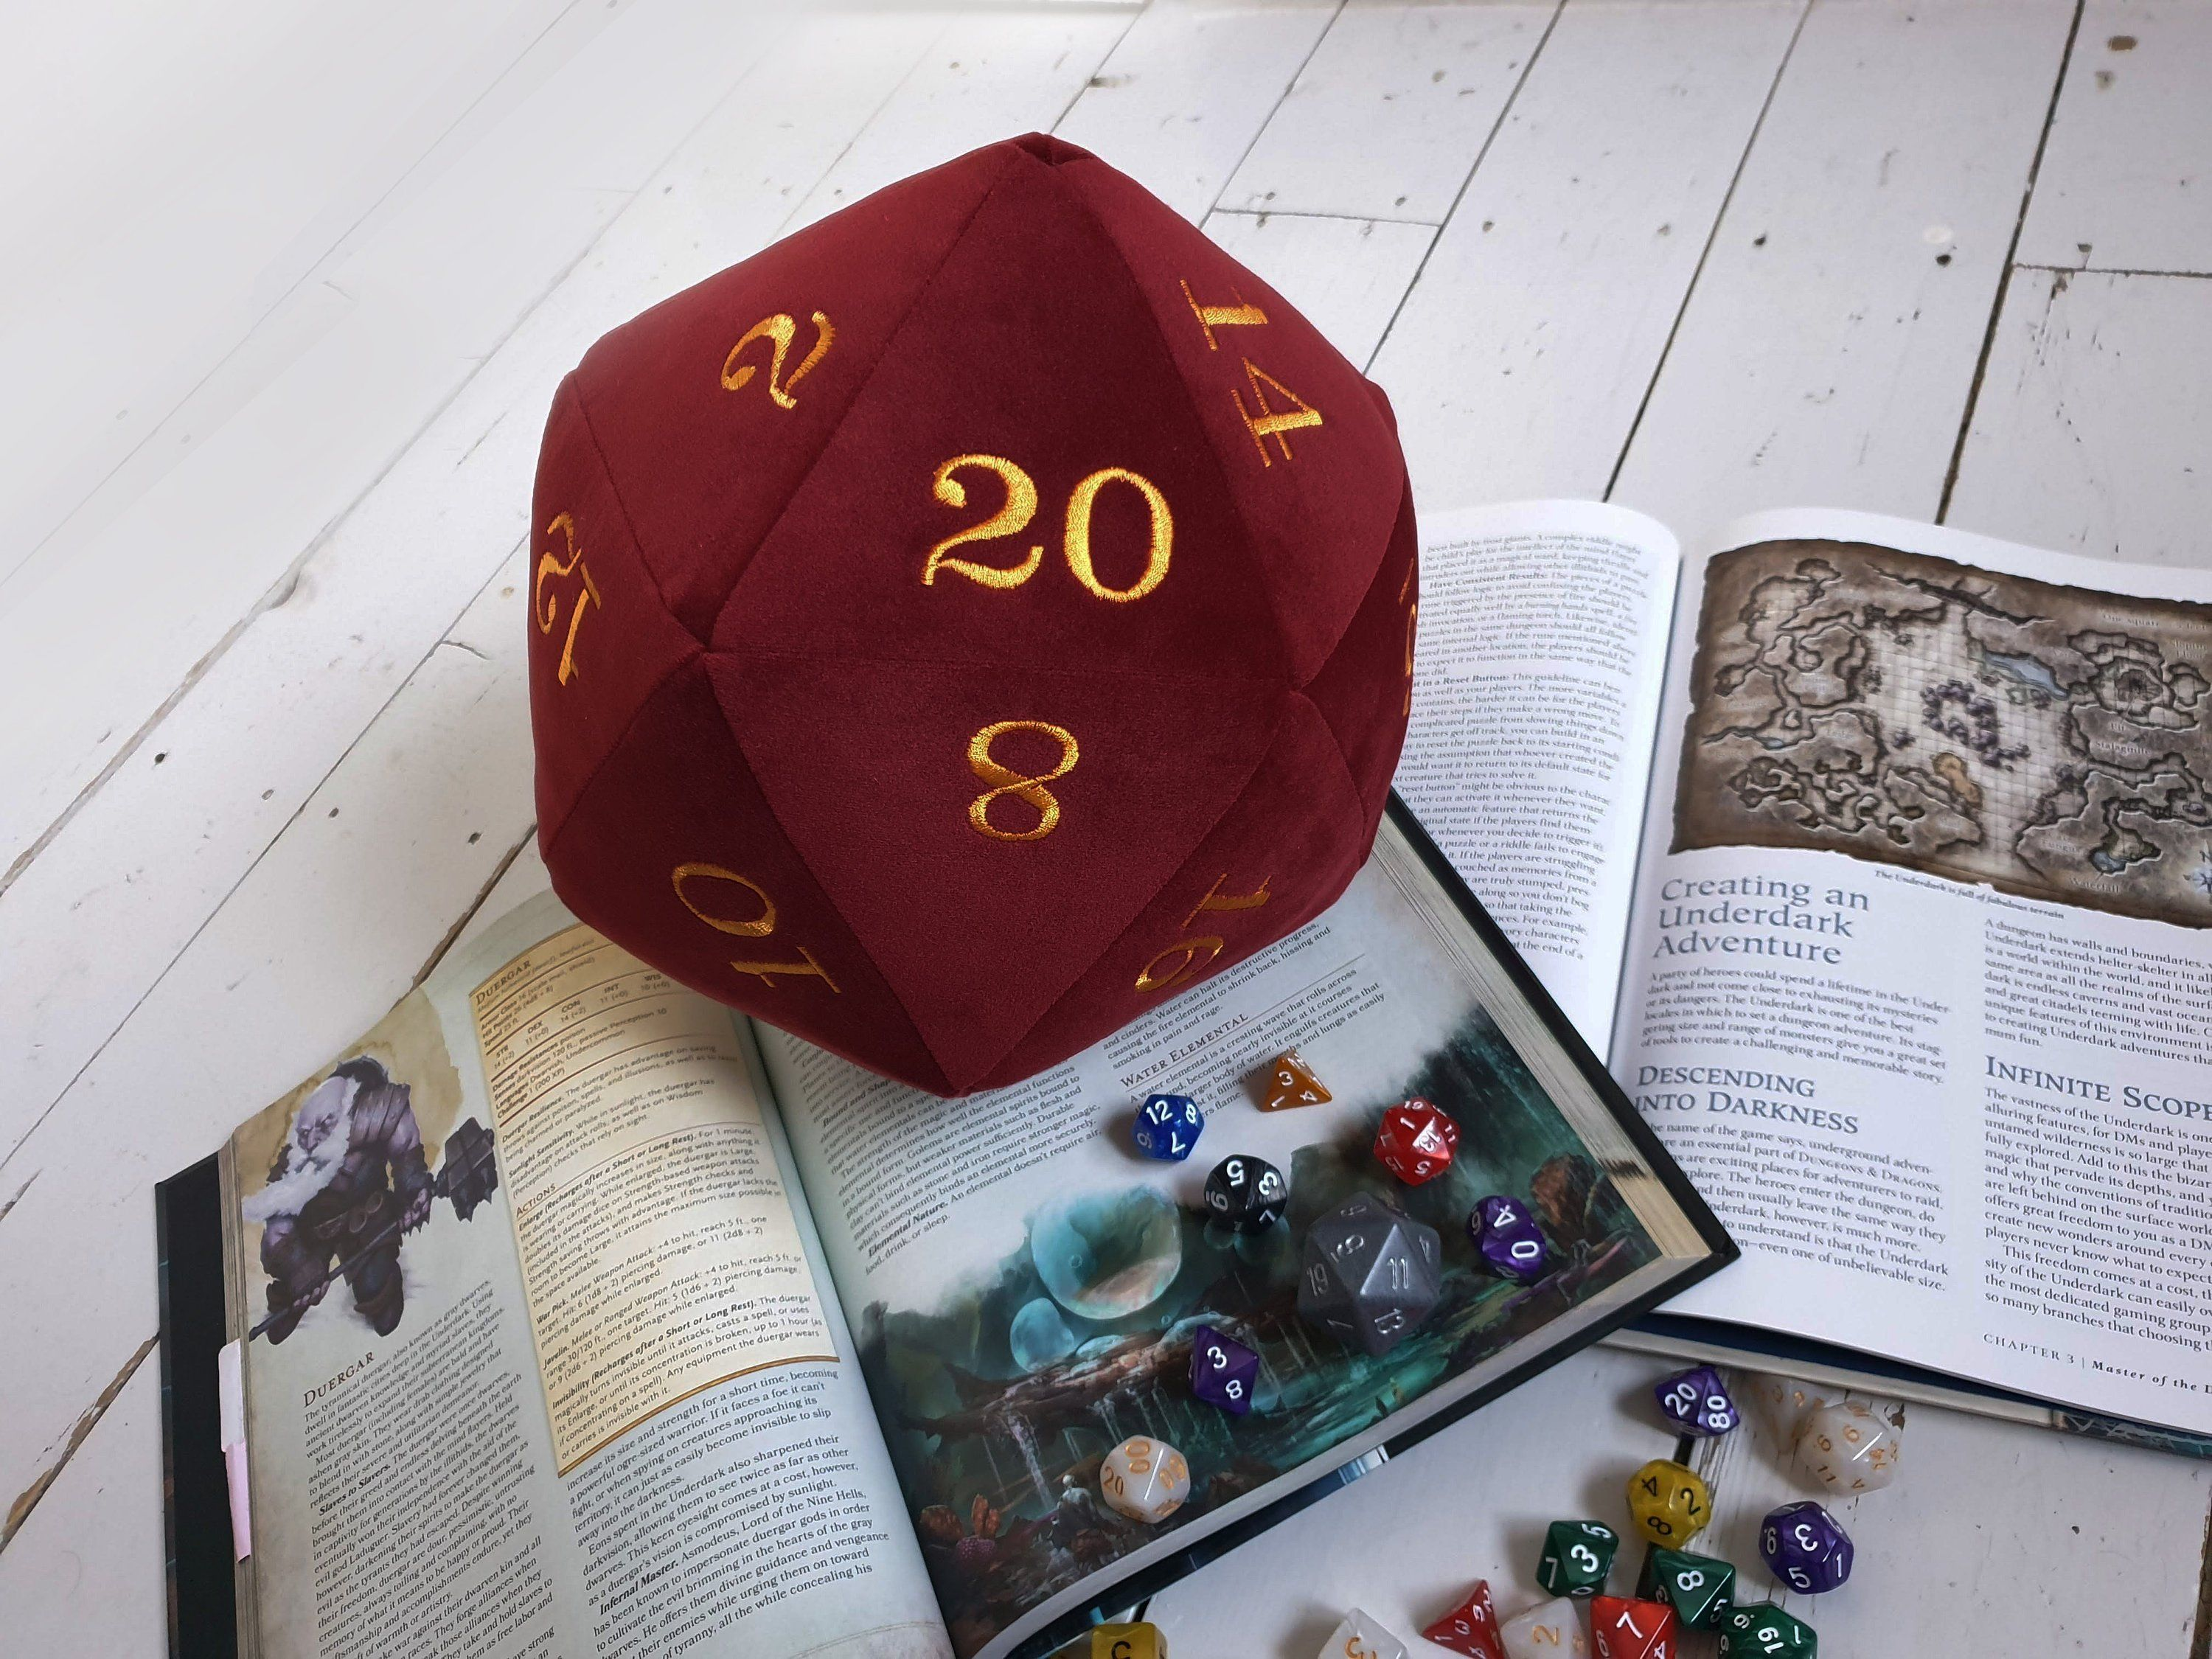 Huge Velvet D20 Plush Dice. Deluxe giant dice in a deep red velvet fabric and machine embroidered with rich yellow coloured numbers.